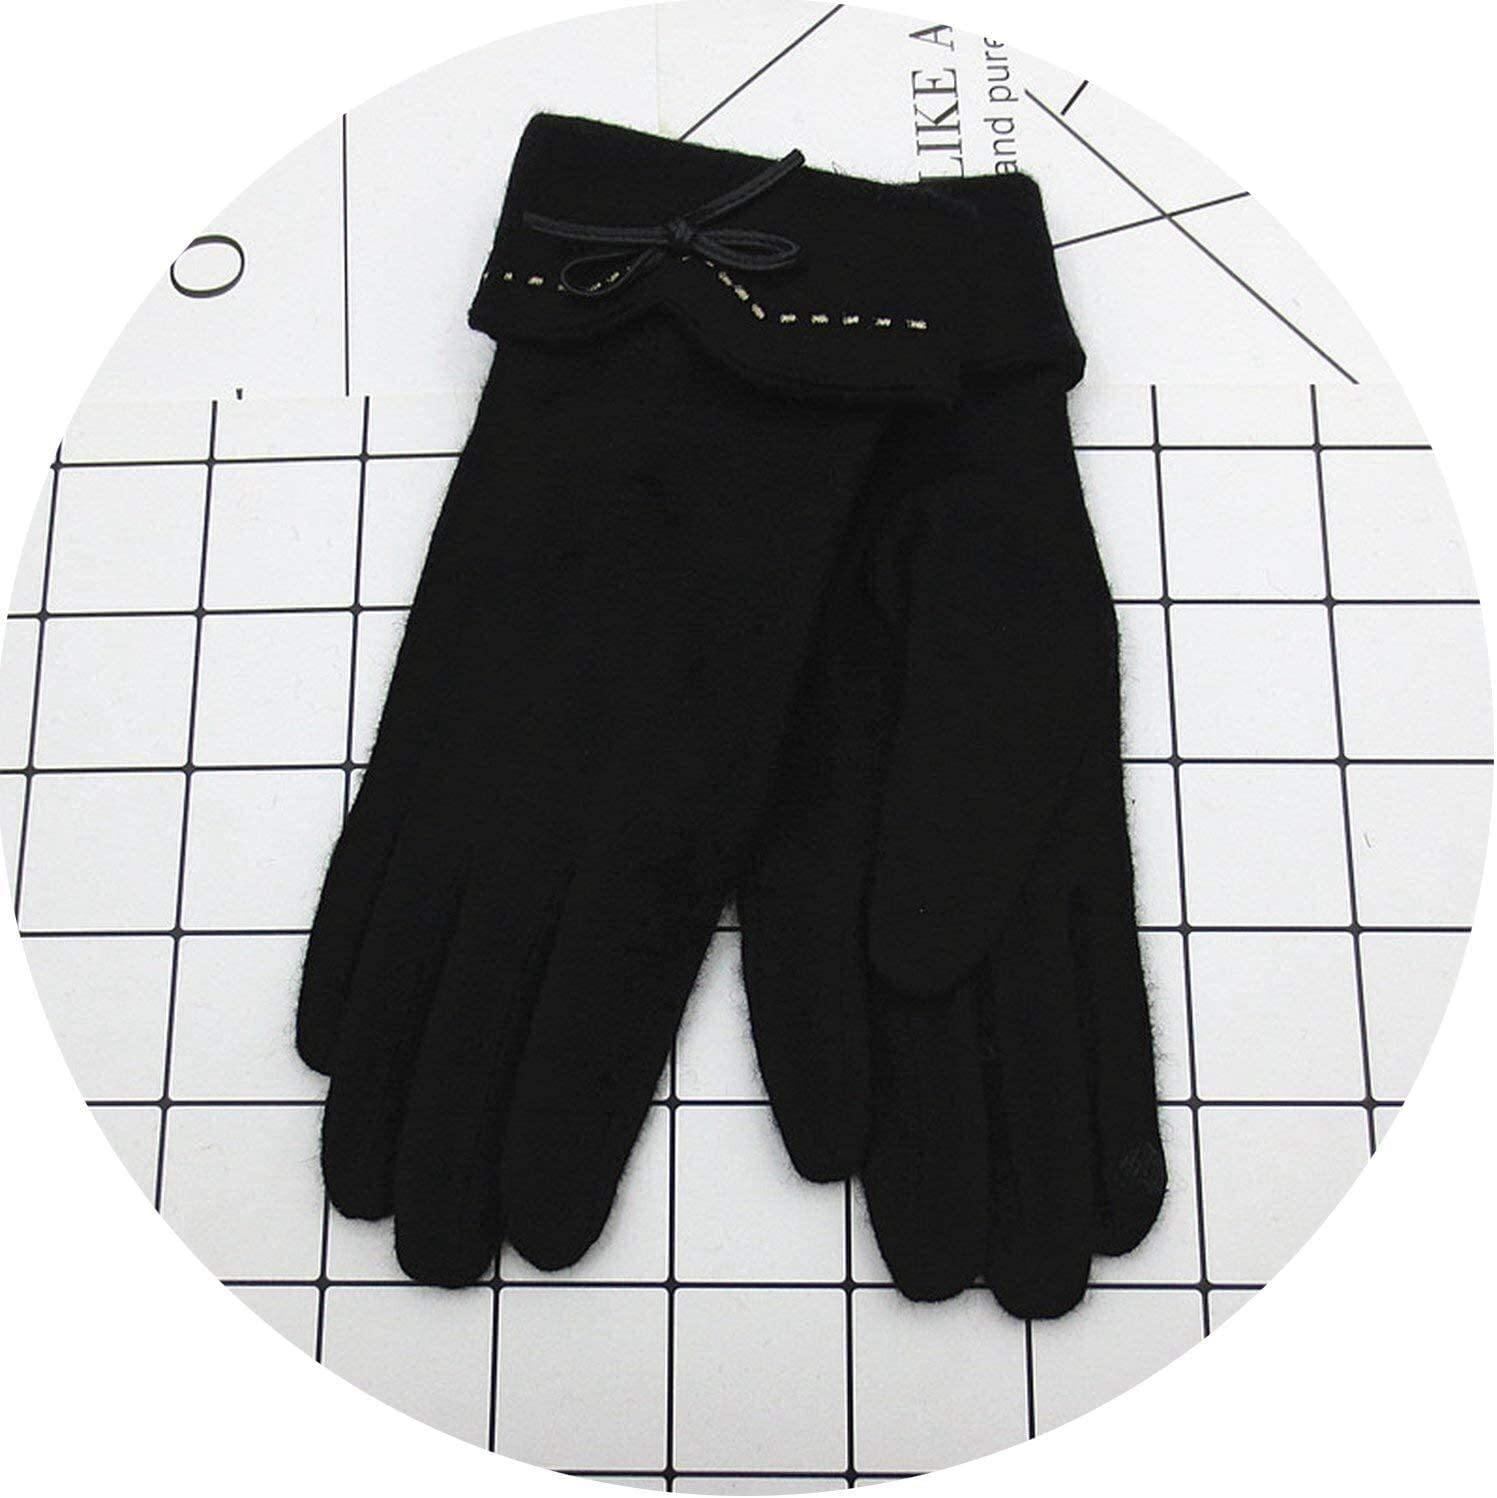 Samantha Warm Gloves Elegant Female Wool Knit Touch Screen Gloves Winter Women Keep Warm Cashmere Full Finger Leather Bow Dotted Gloves (Color : A Black, Size : Oneszie)